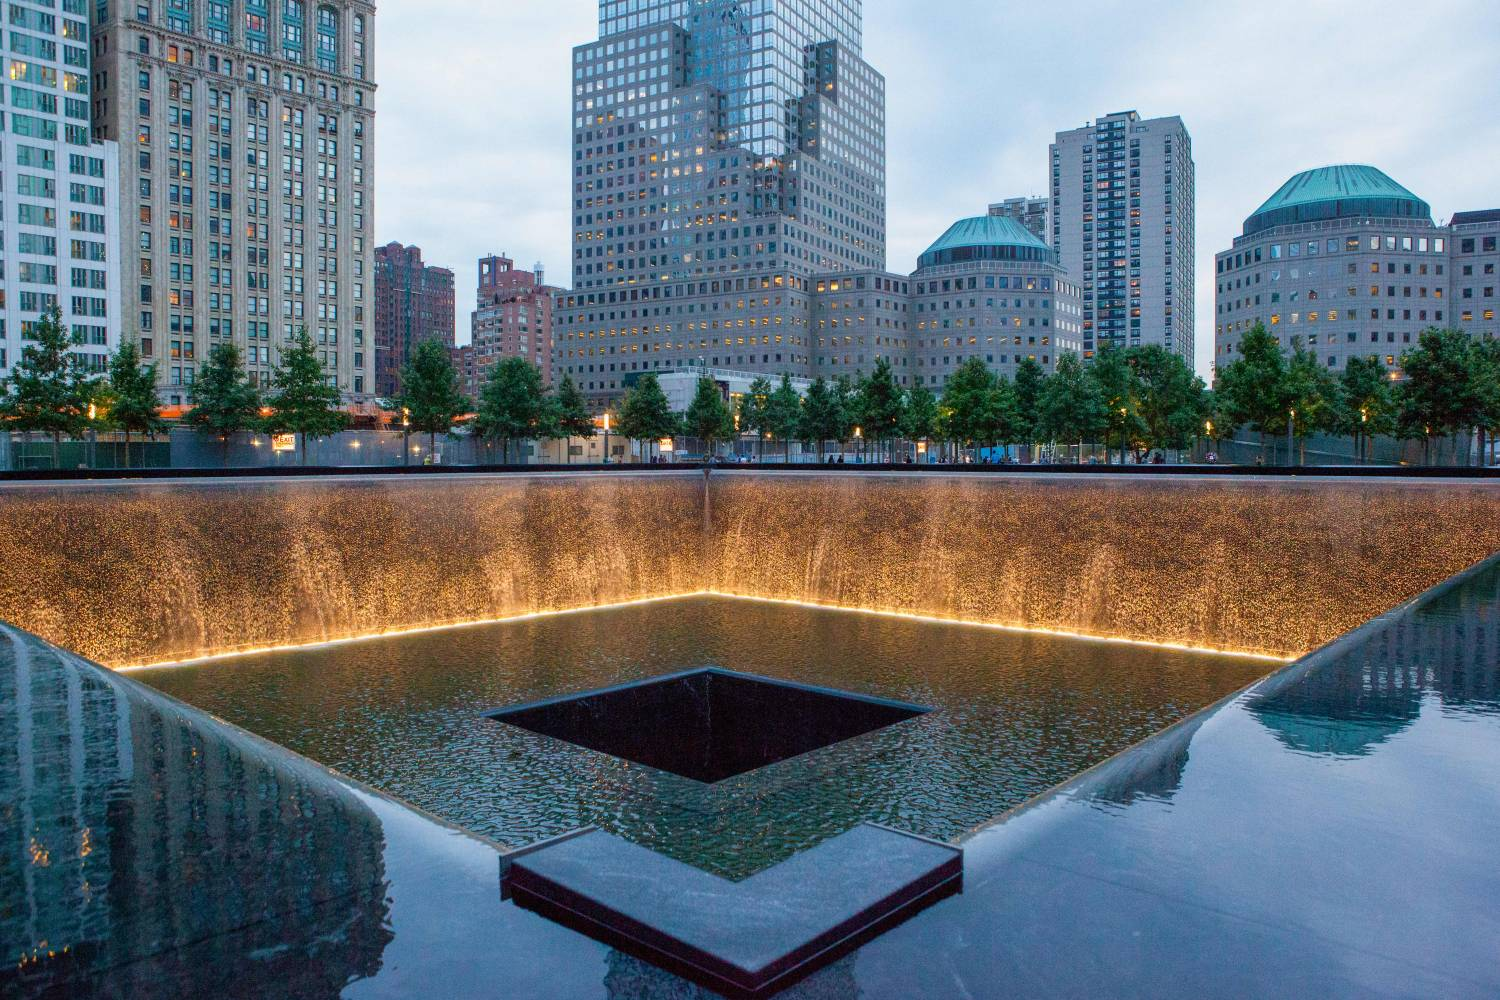 9/11 Memorial|The Ultimate Guide of Things to Do in the Financial District NYC